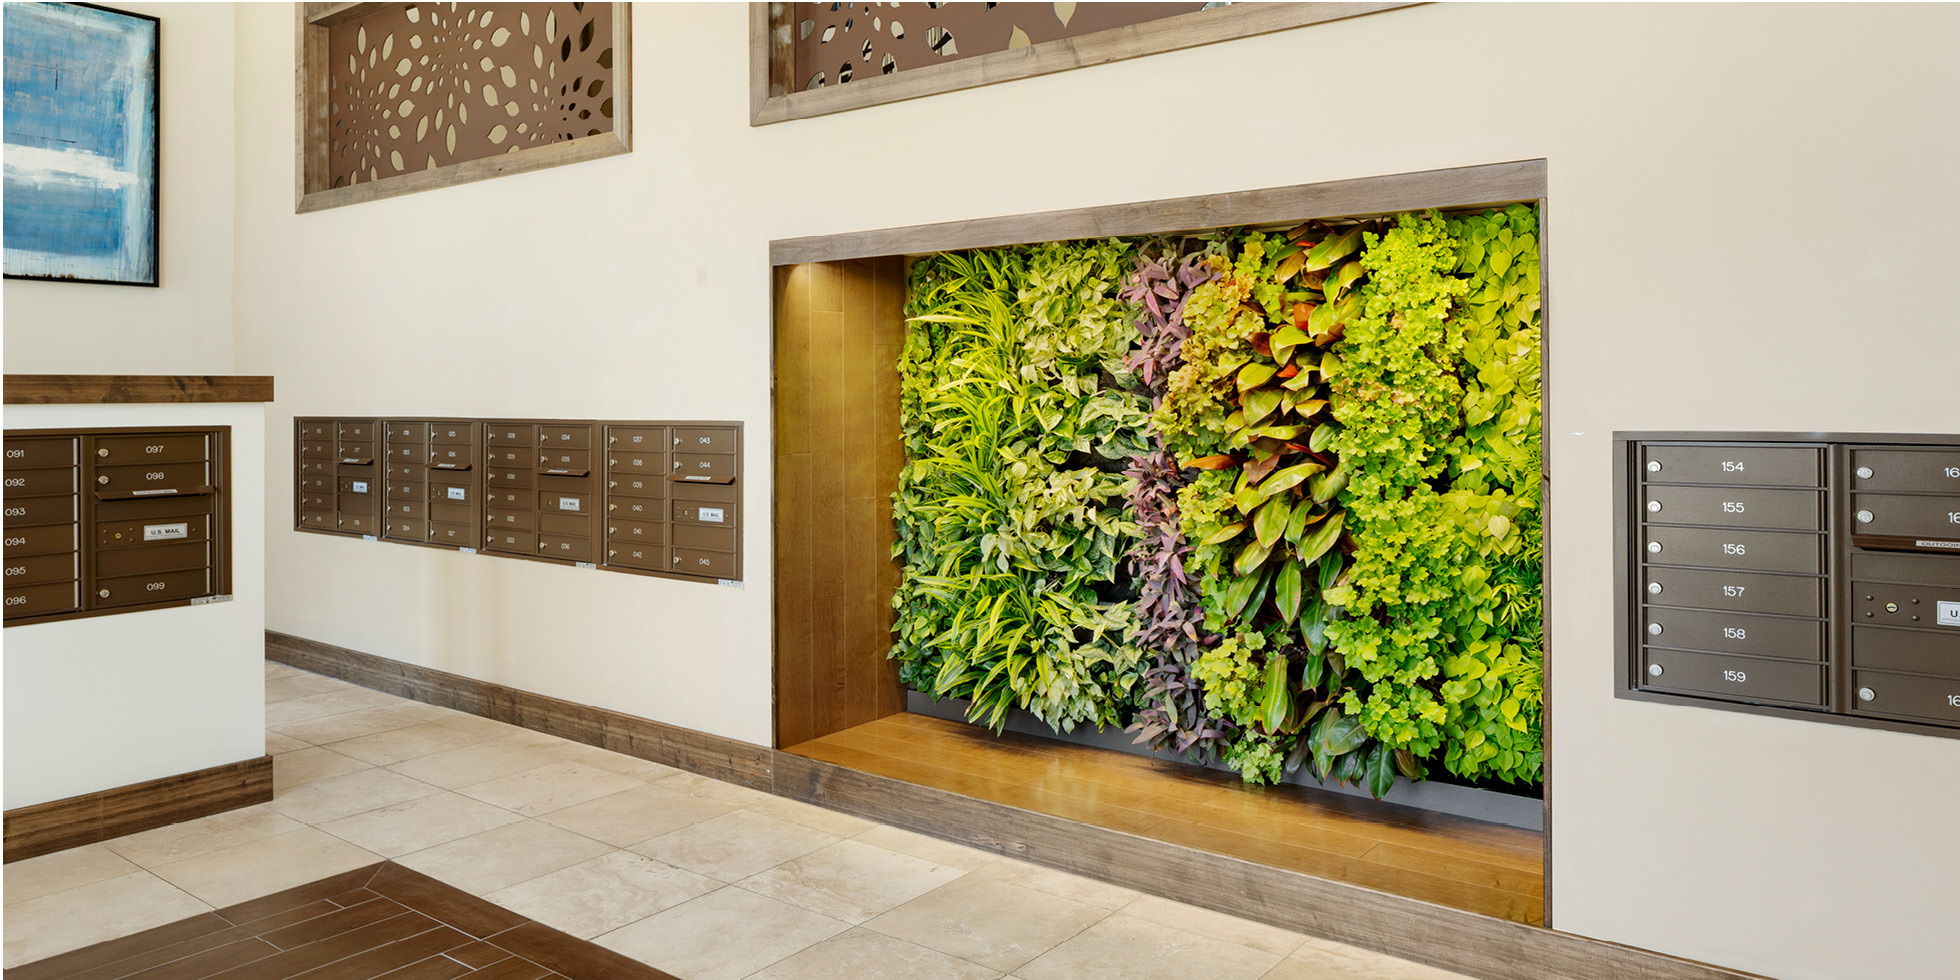 Villas on the Boulevard Living Wall by Habitat Horticulture - View 3